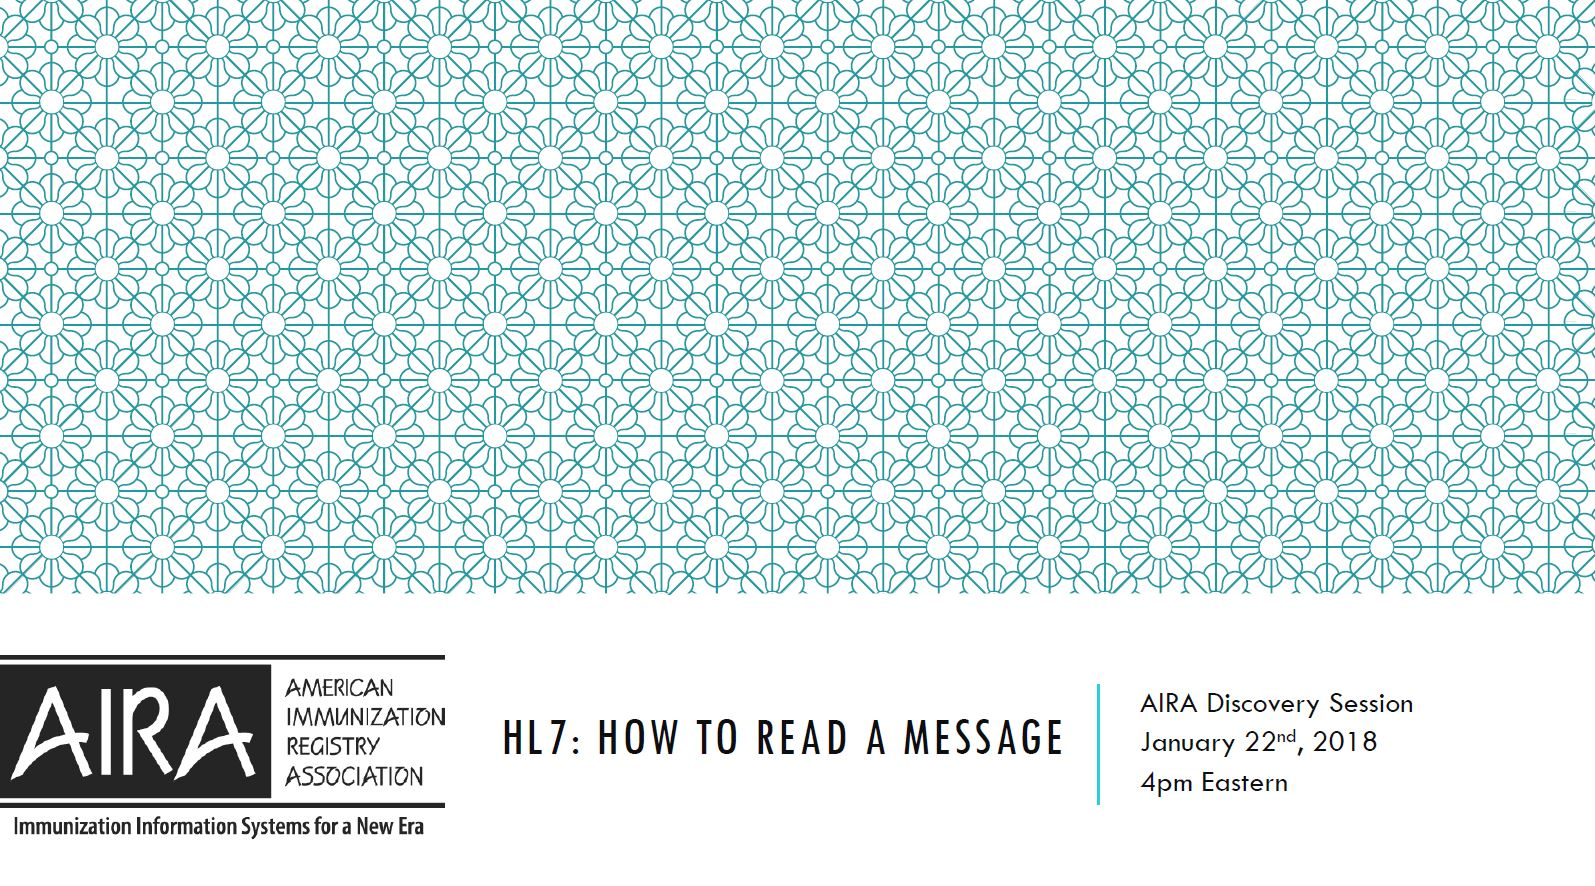 AIRA Discovery Session: HL7: How to Read a Message